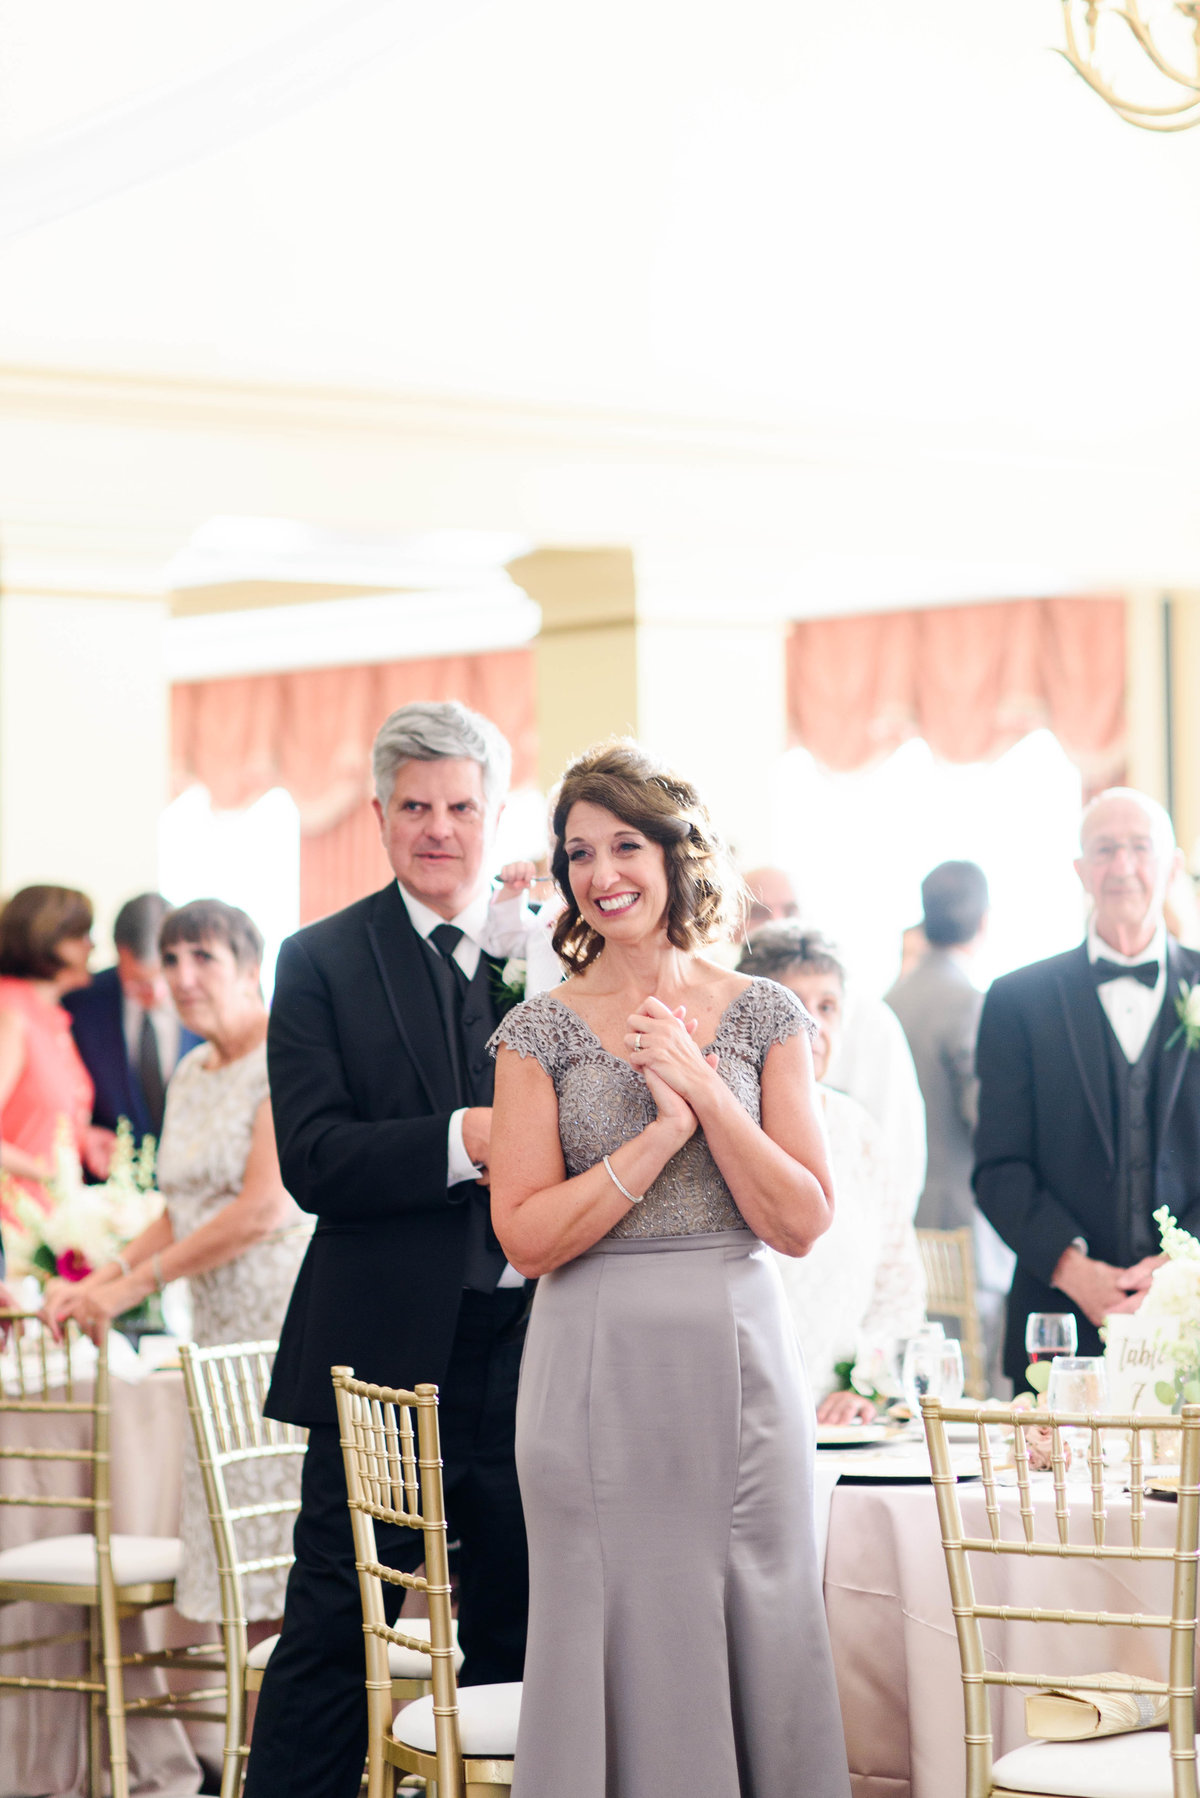 MB-valleybrooke-country-club-wedding-photos-134